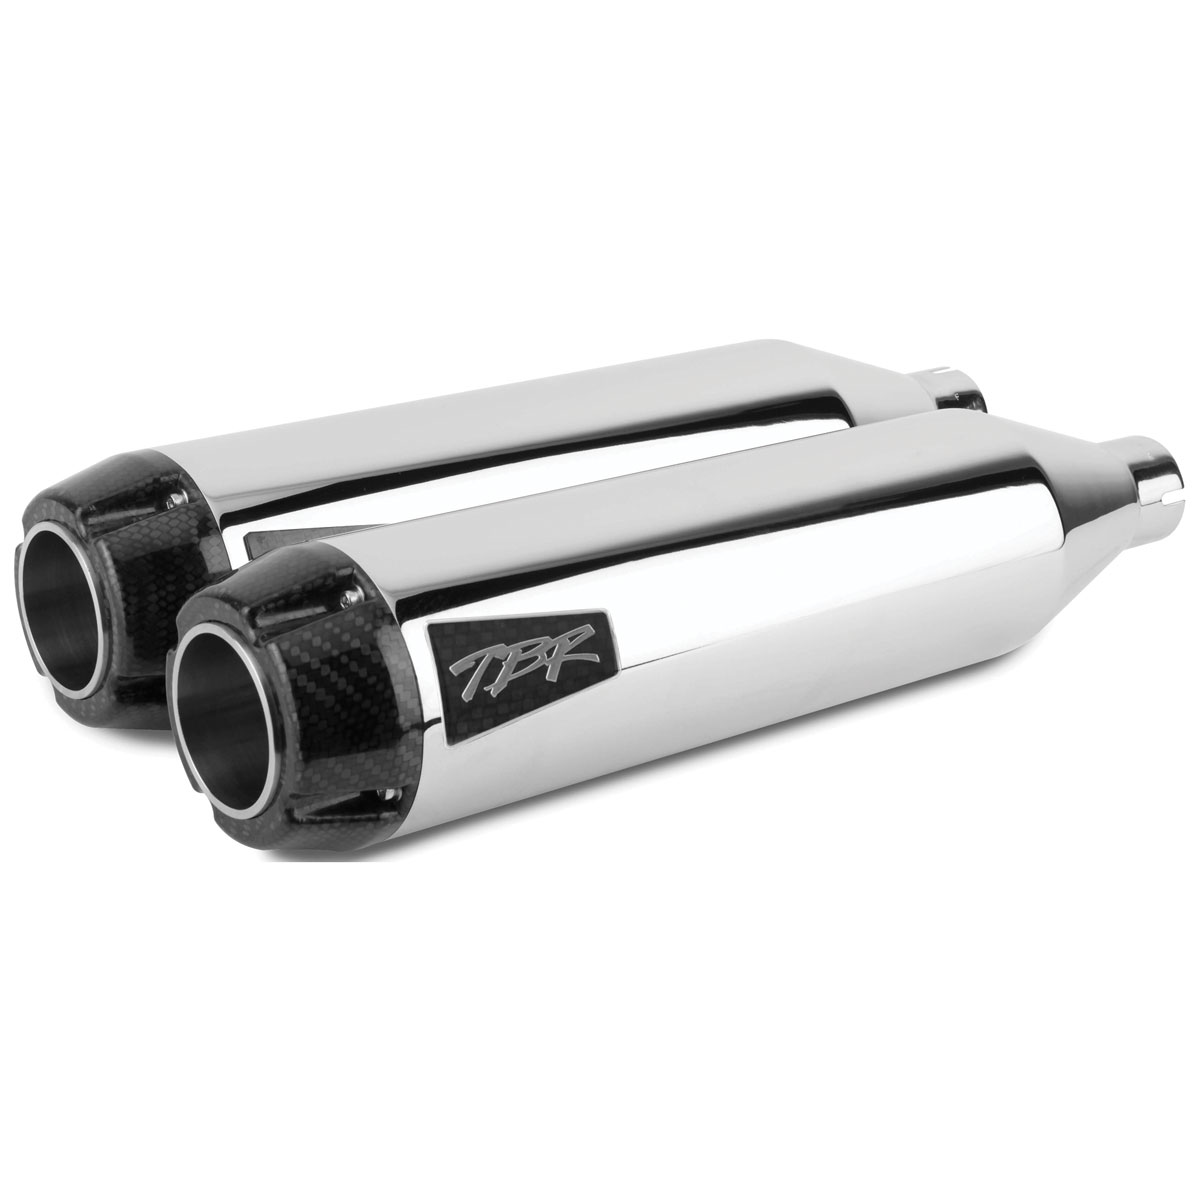 Two Brothers Racing Dual Shorty Slip-On Muffler Chrome with Carbon Fiber Tips